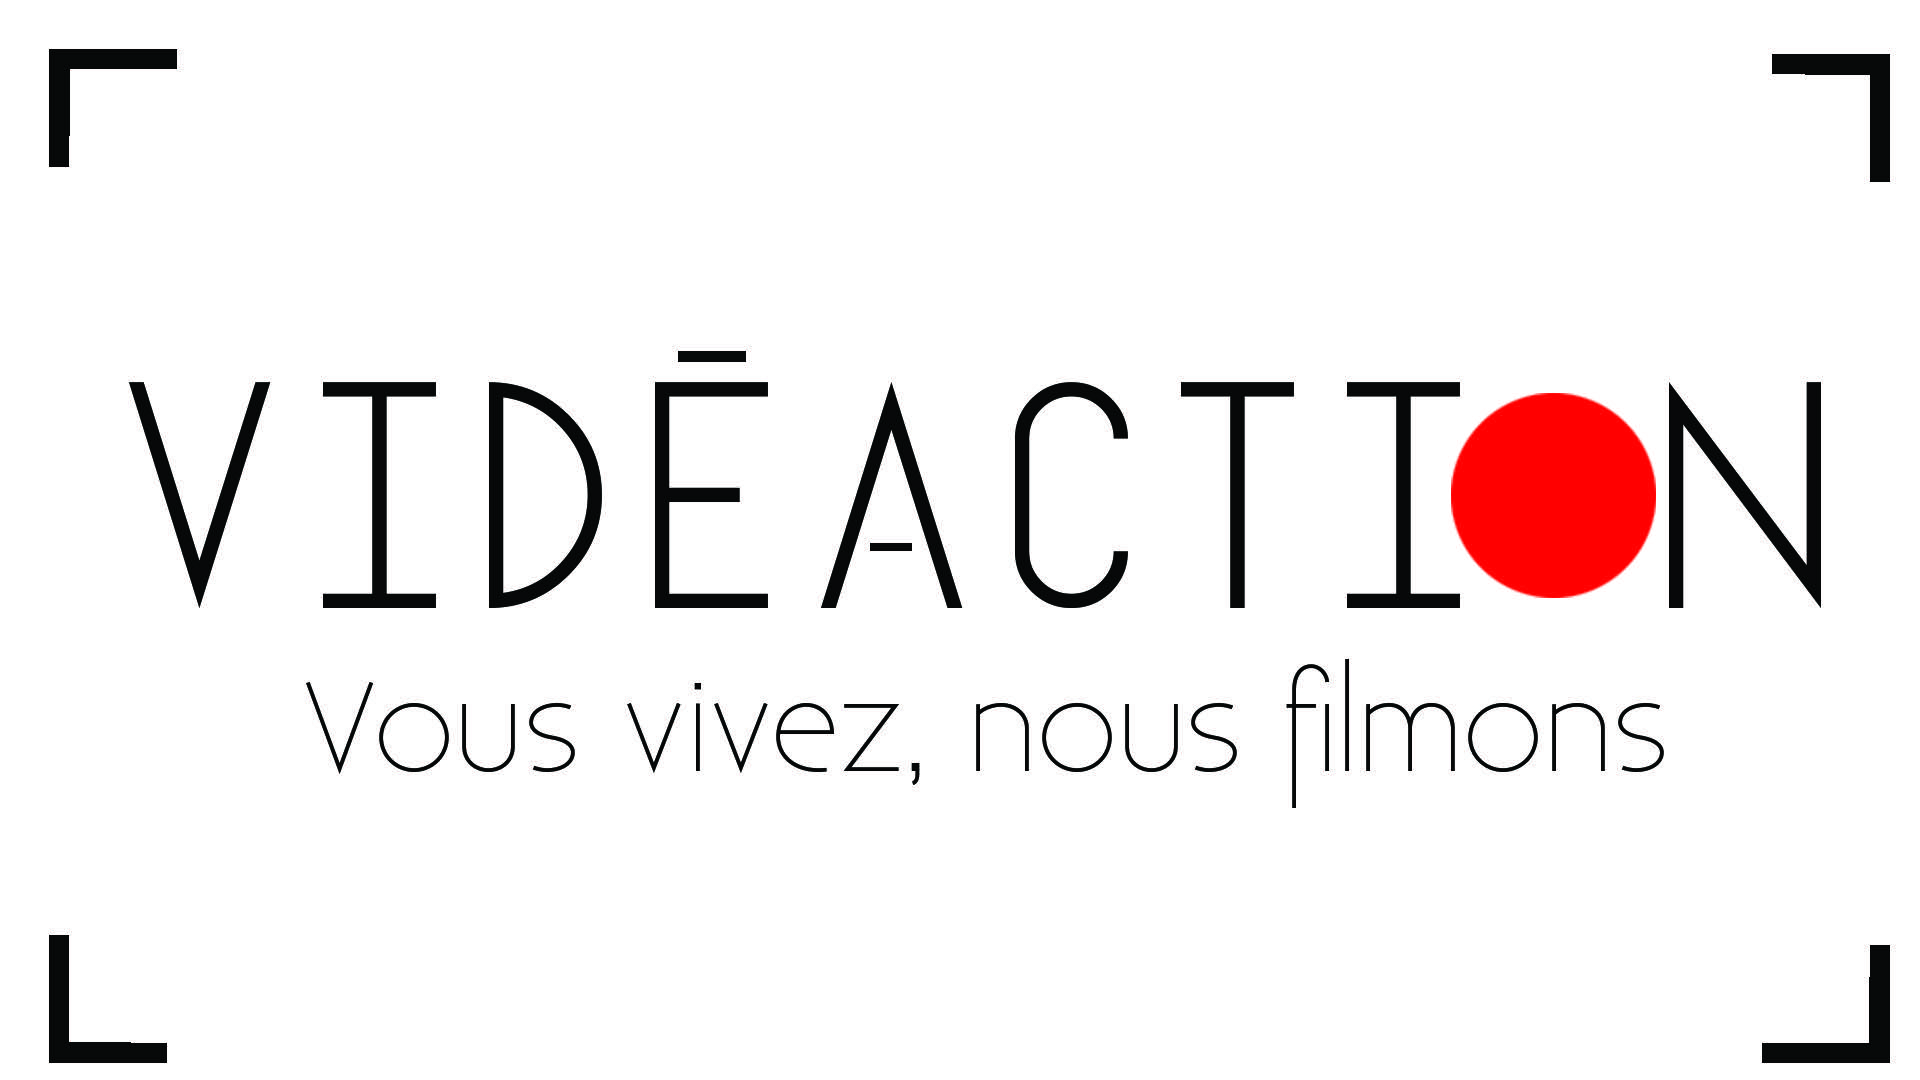 logo videaction